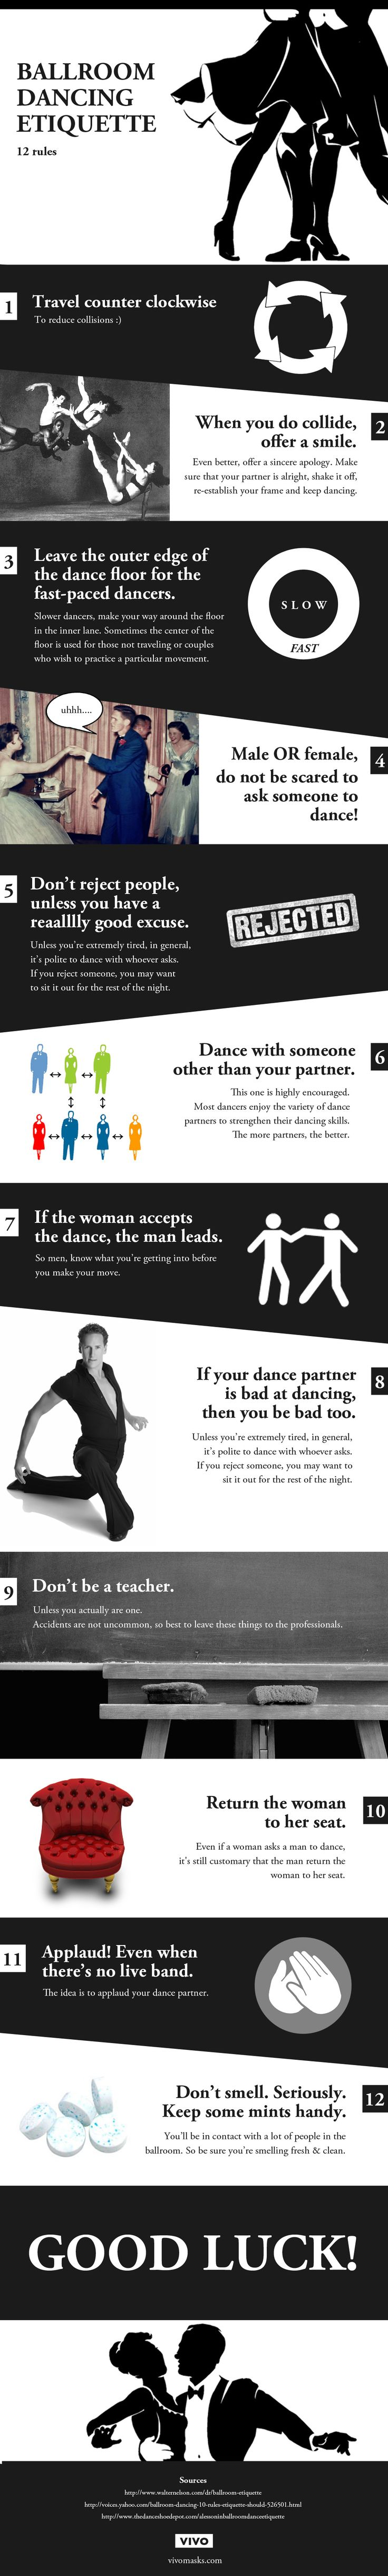 """This fun image describes the """"12 rules"""" for ballroom dancing, or the etiquette that should be followed. This is great to use to introduce dance etiquette in the classroom to new dancers or those without ballroom dance experience. It explains the rules in a fun manner, rather than a dry """"this is what to do"""" way."""